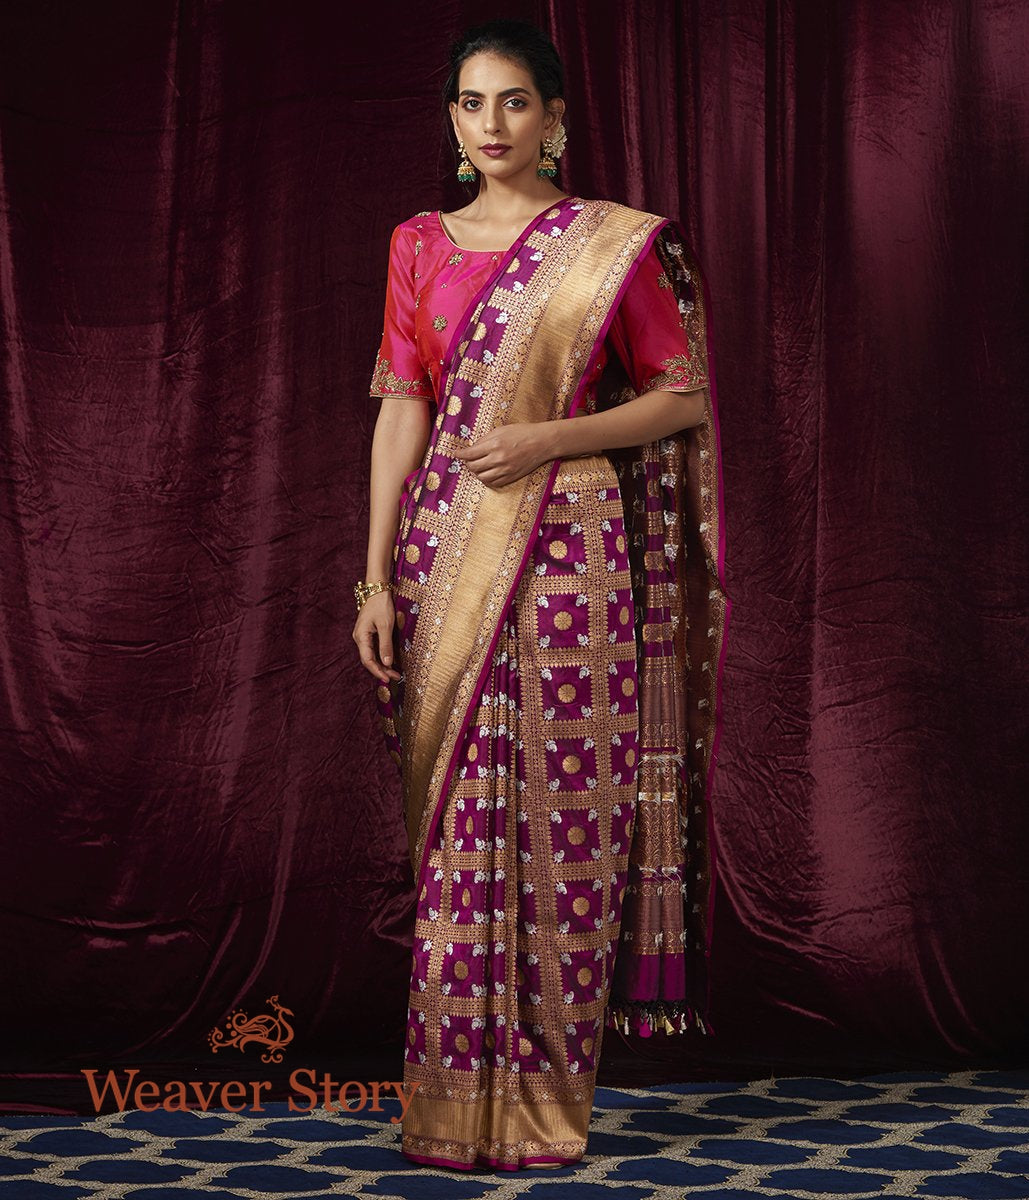 Handwoven Wine Katan Silk Saree with Zari Checks and Paisleys